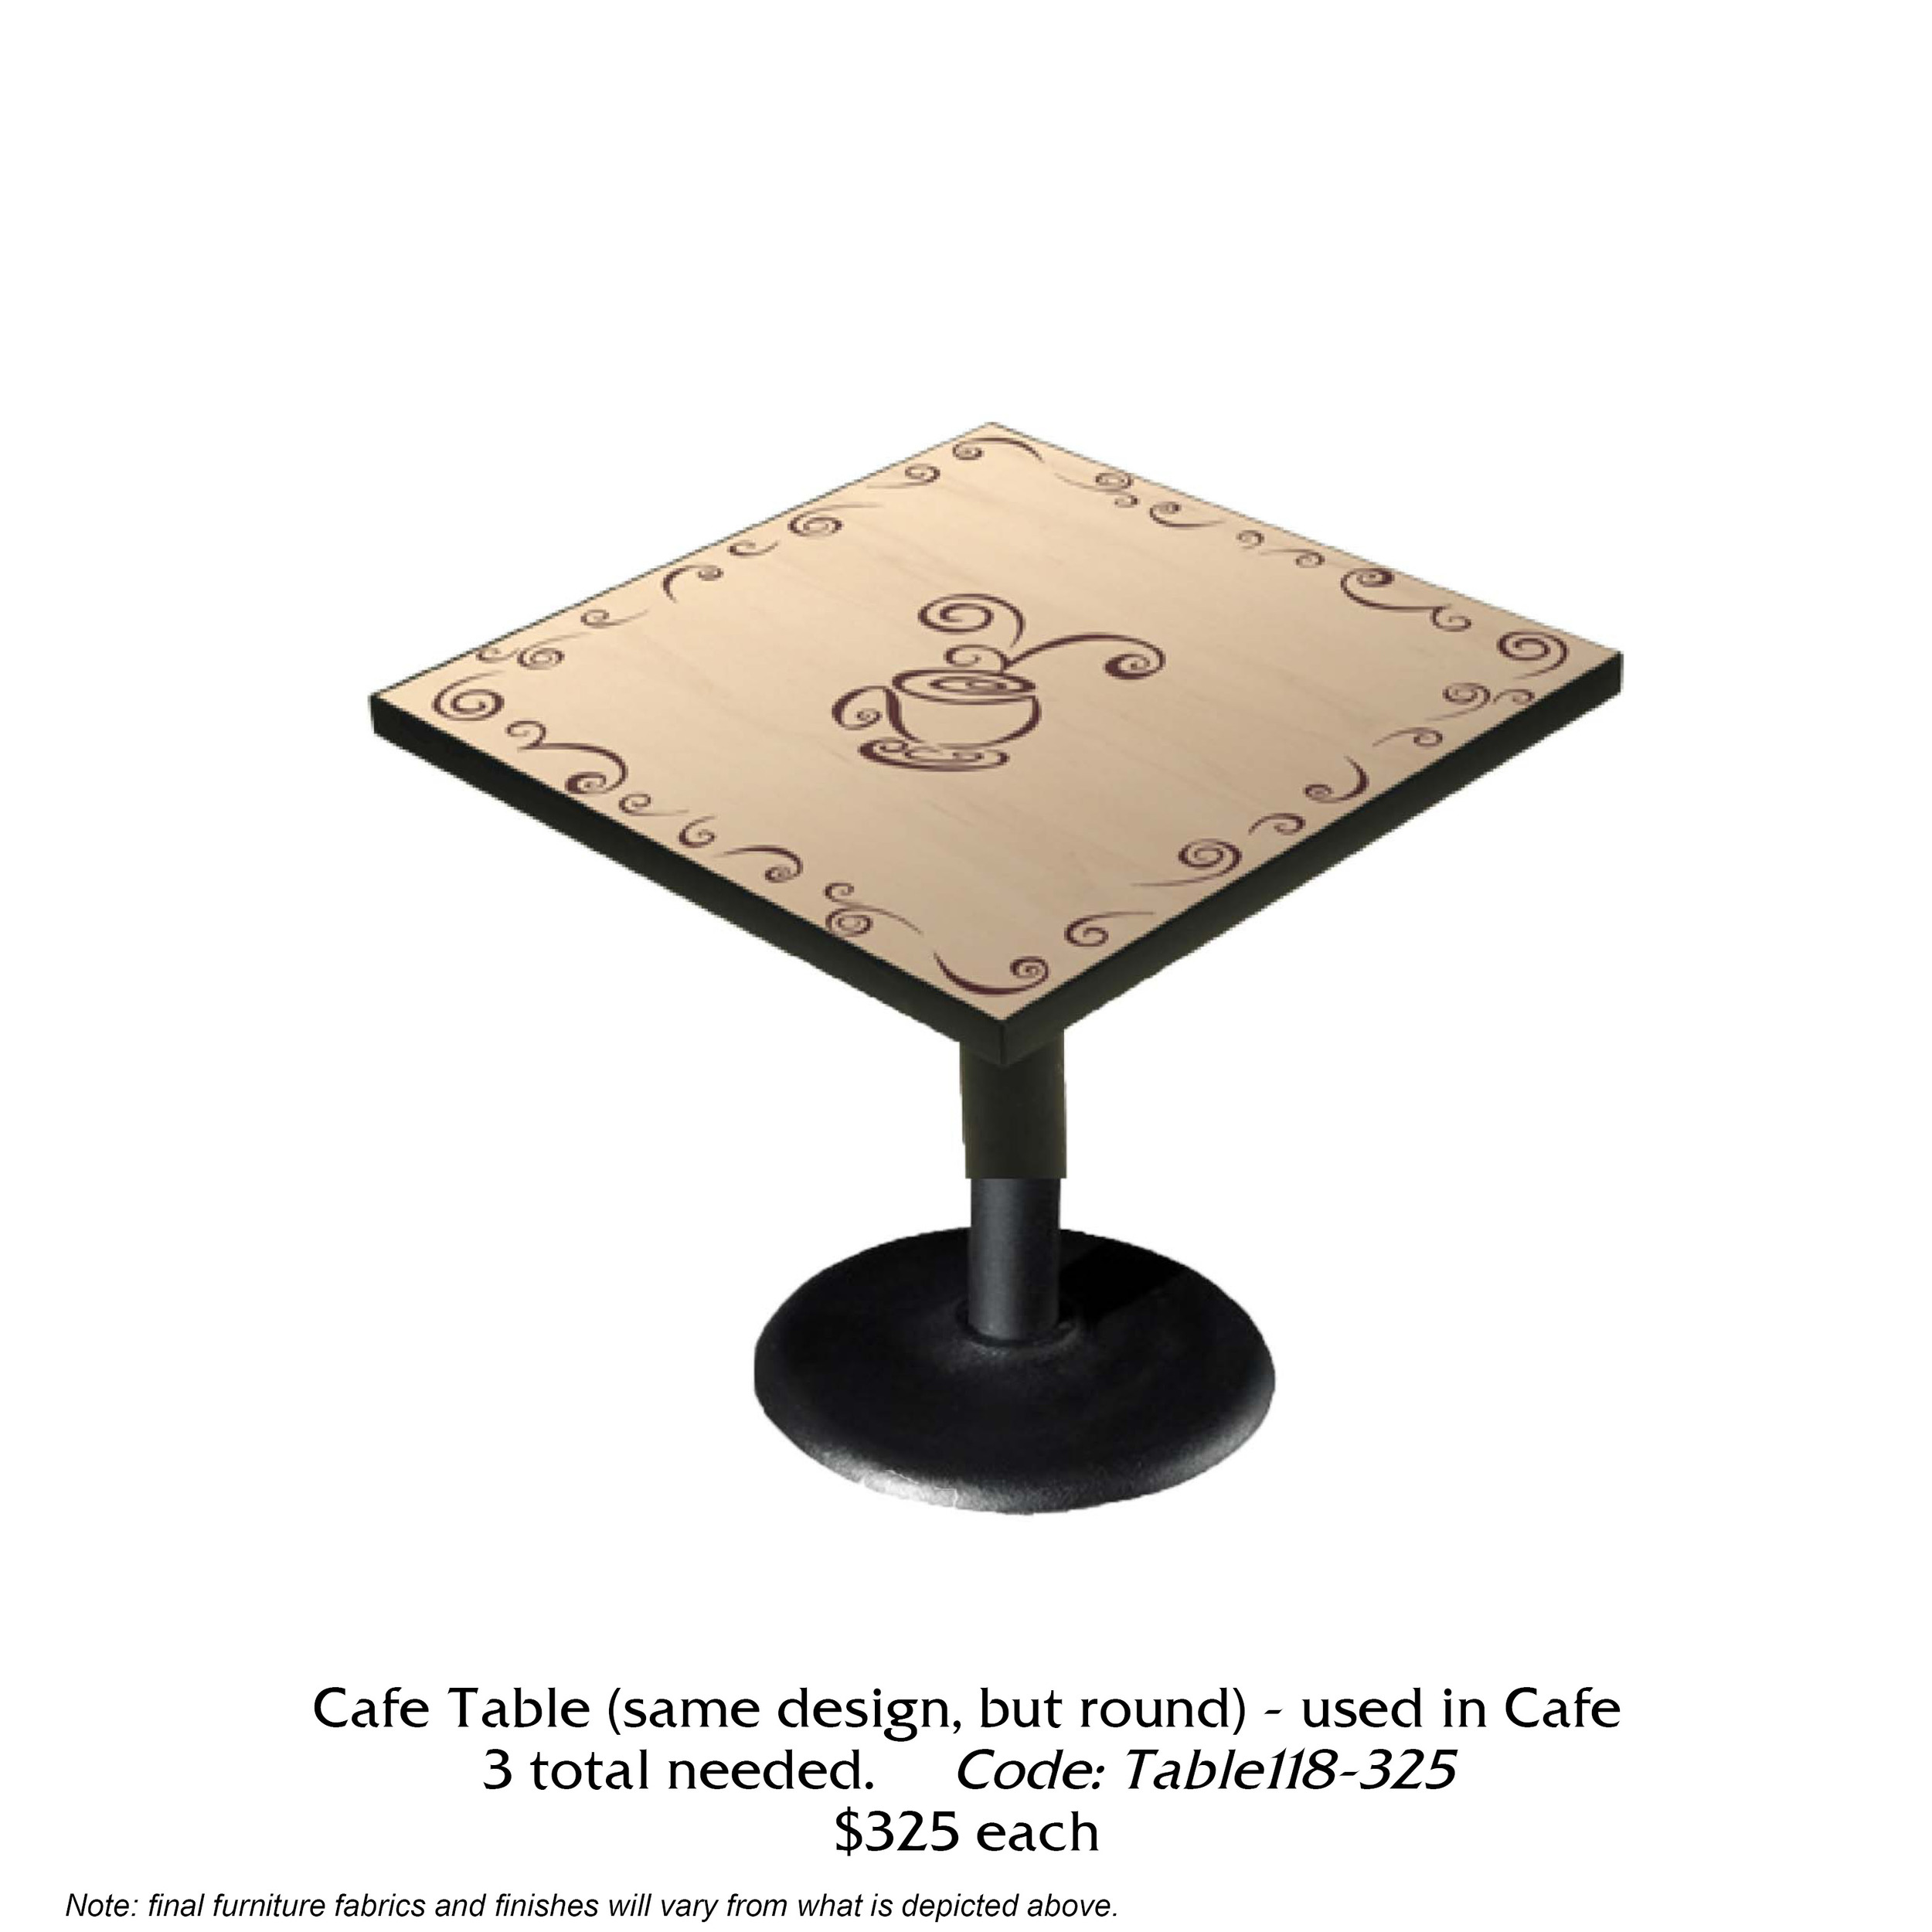 C109-F118-F119-Cafe Table - 3-3round.jpg